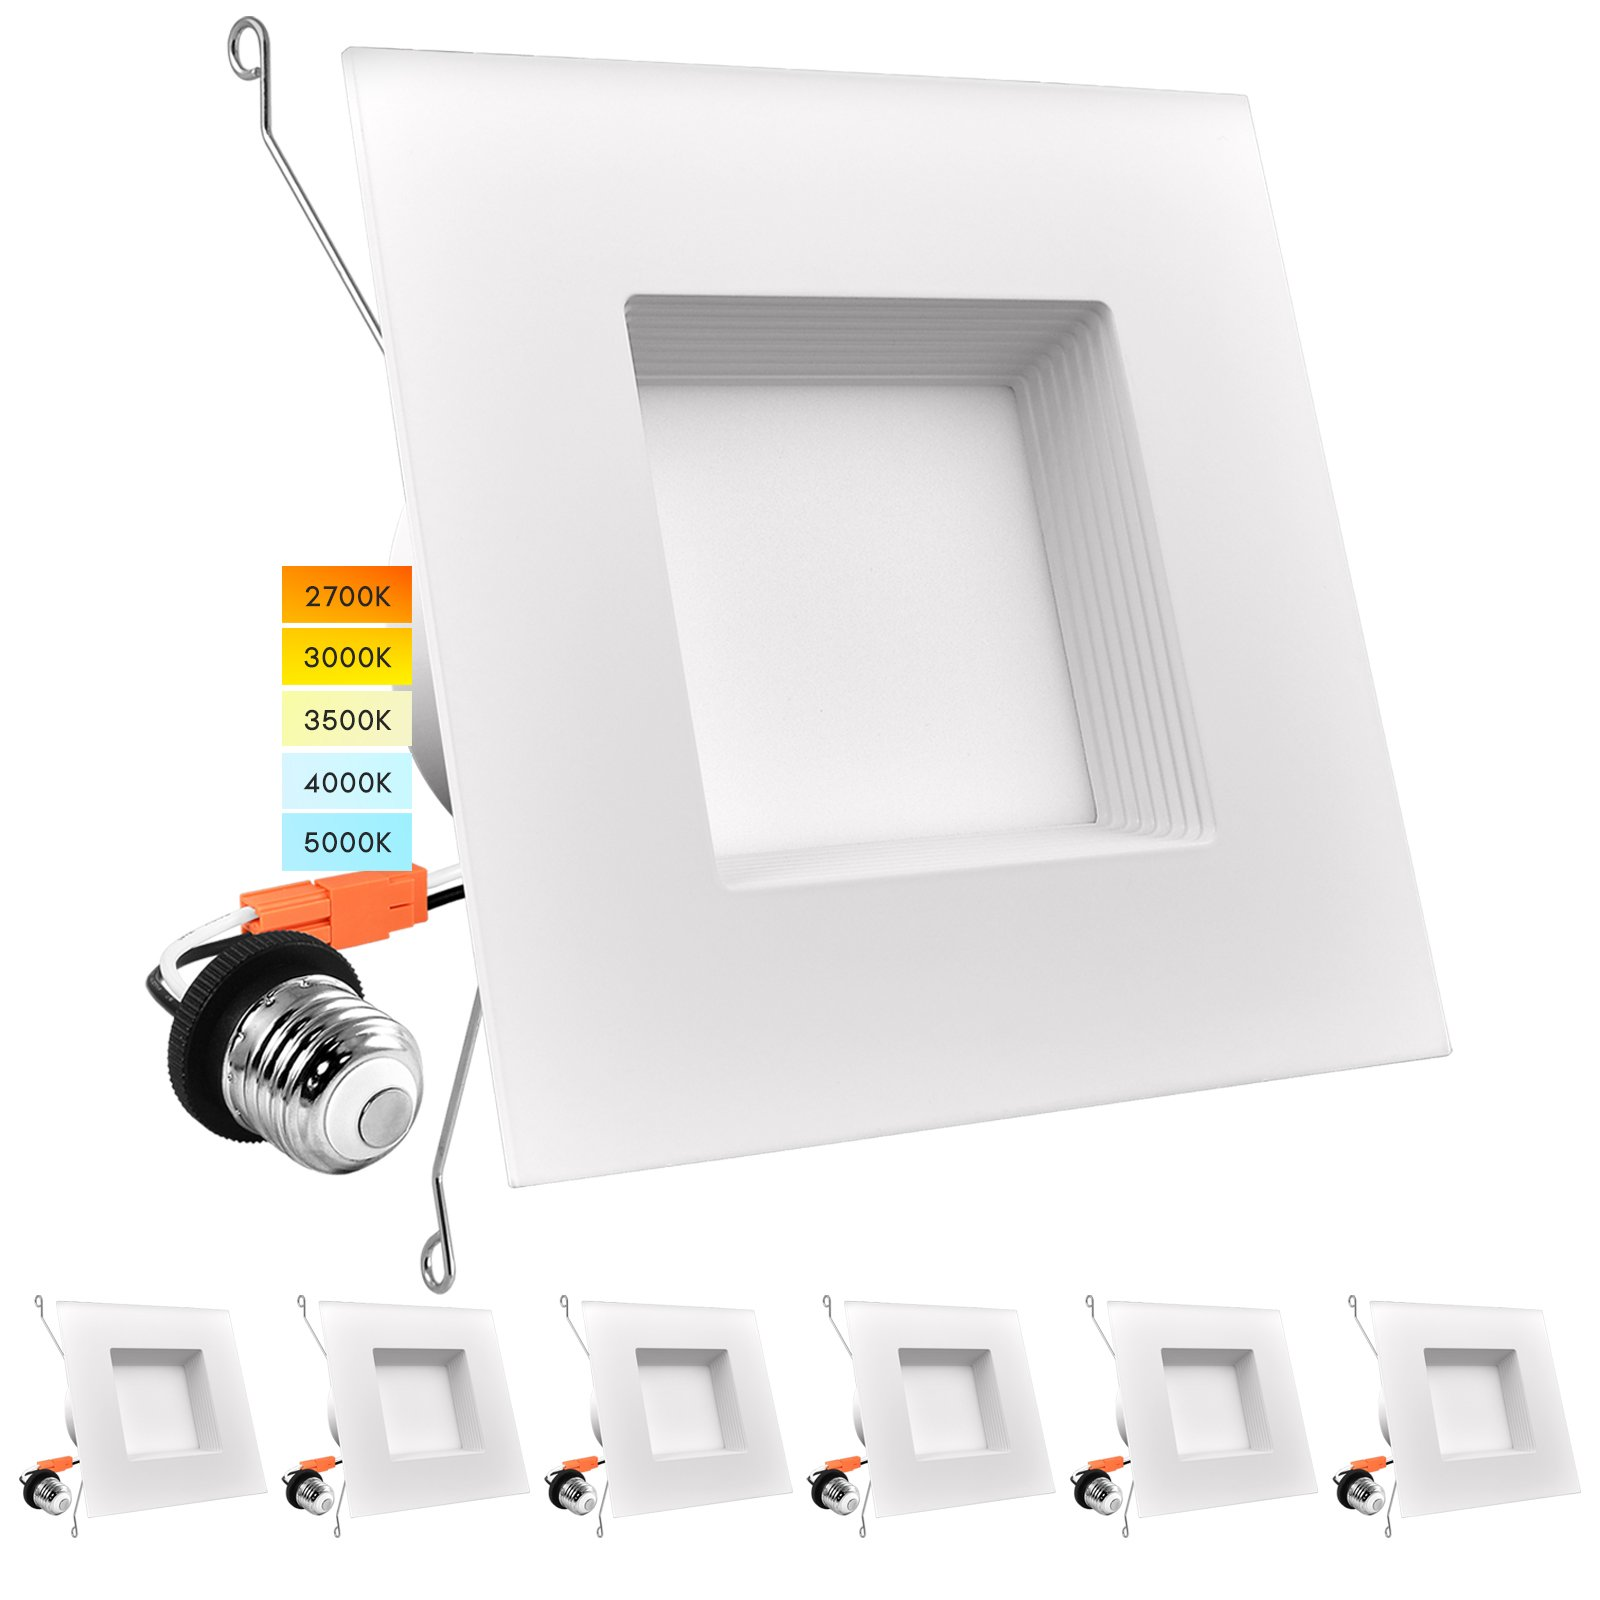 luxrite 5 6 led square recessed light 14w 90w 5 color selectable dimmable 1100 lumens wet rated baffle trim 6 pack walmart com